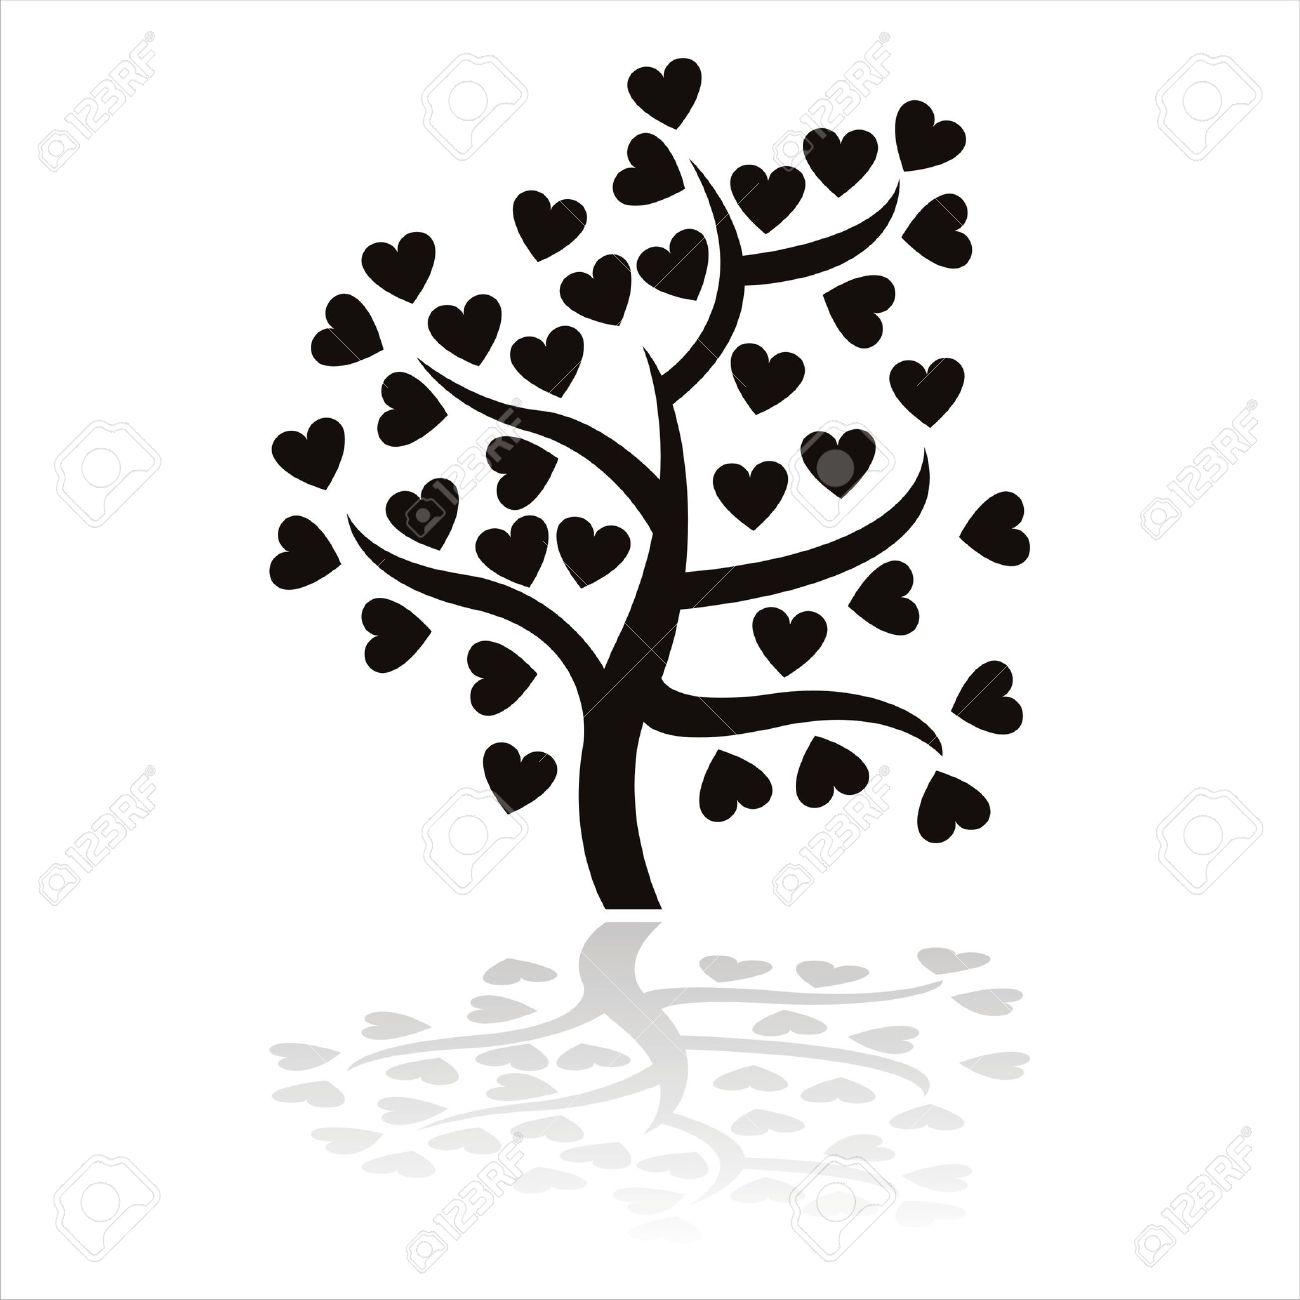 black tree icon with hearts isolated on white Stock Vector - 12414186